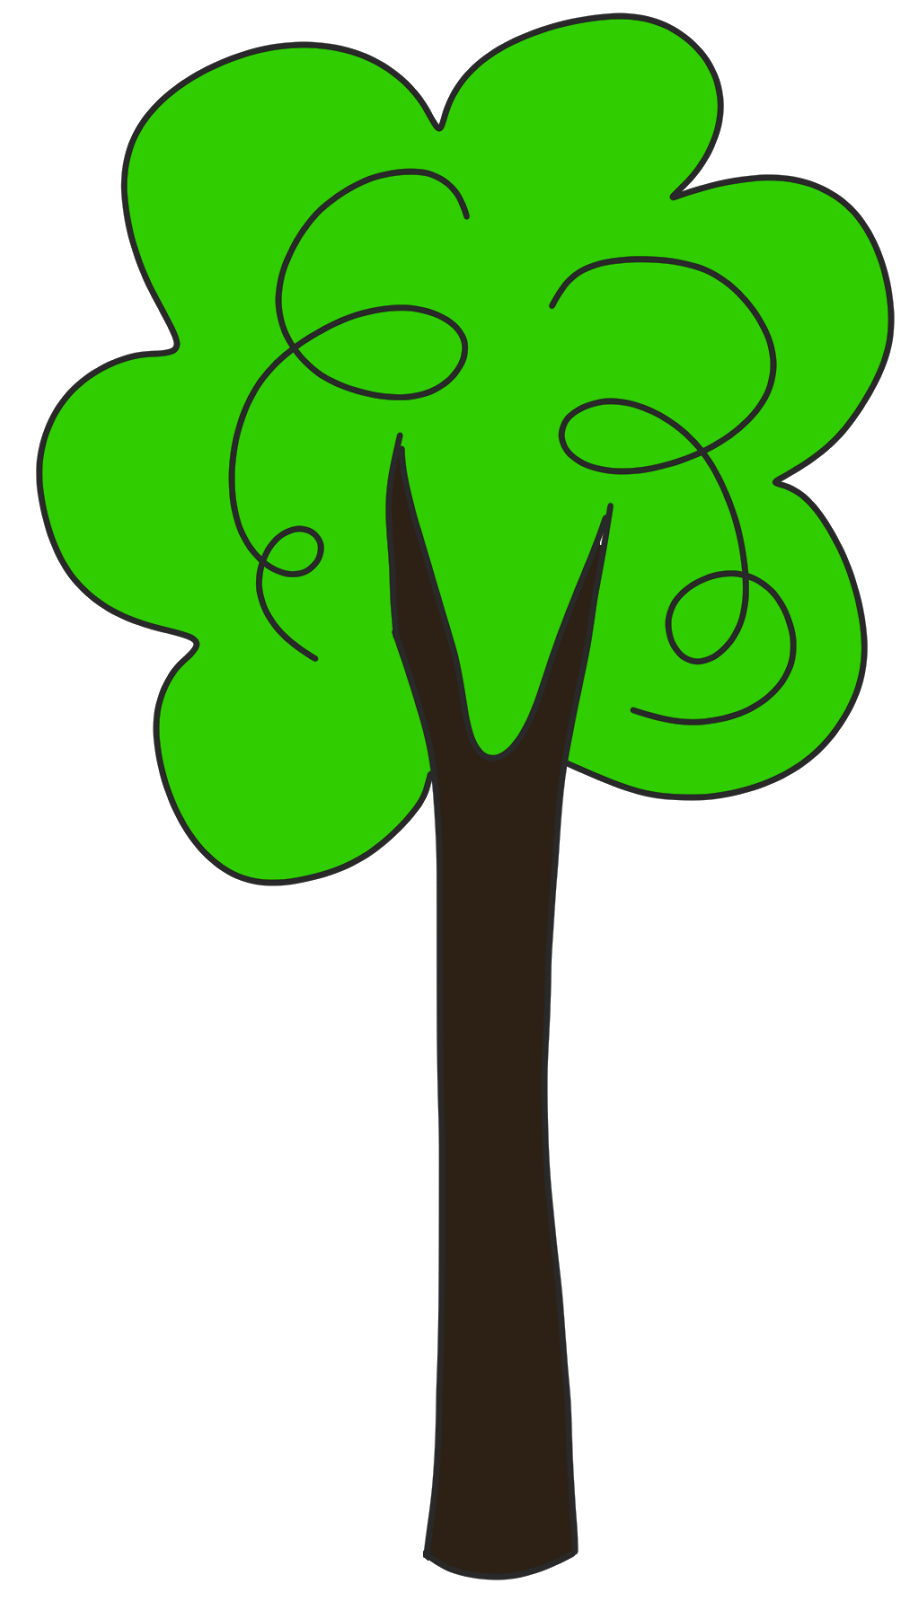 Tall thin tree clipart banner stock Tall thin tree clipart - ClipartFest banner stock